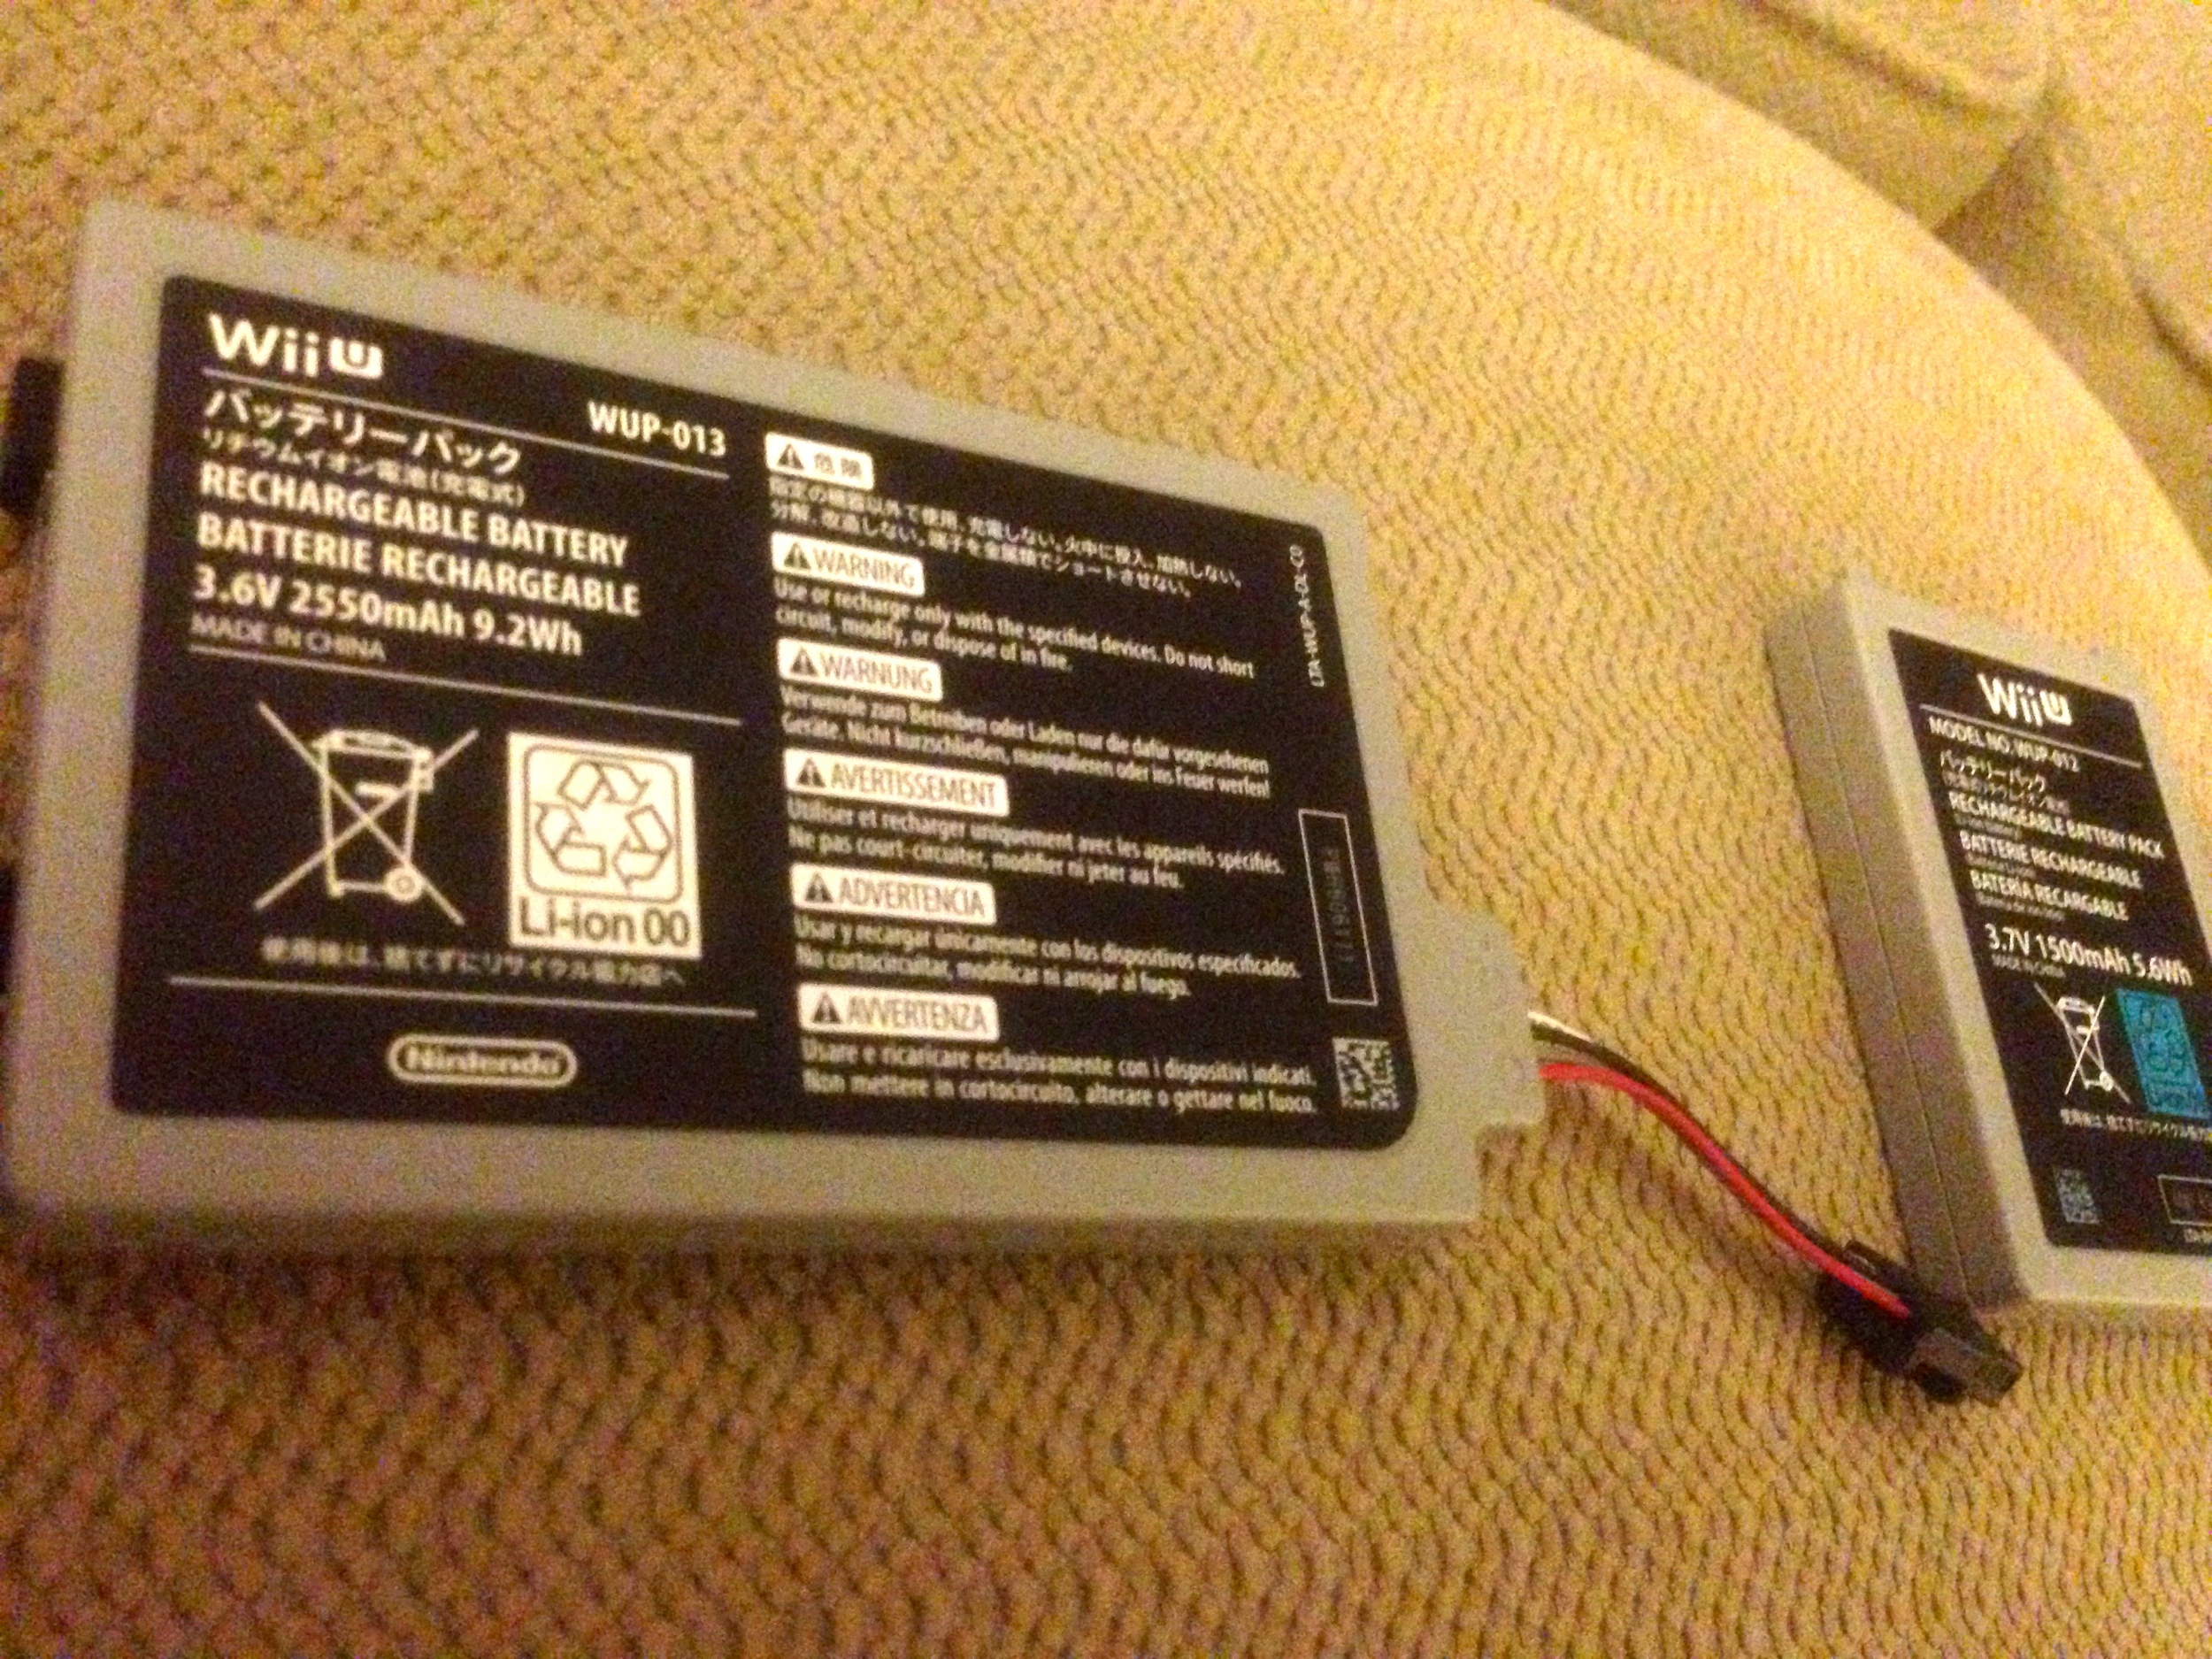 The extended battery (left) compared to the original battery (right).